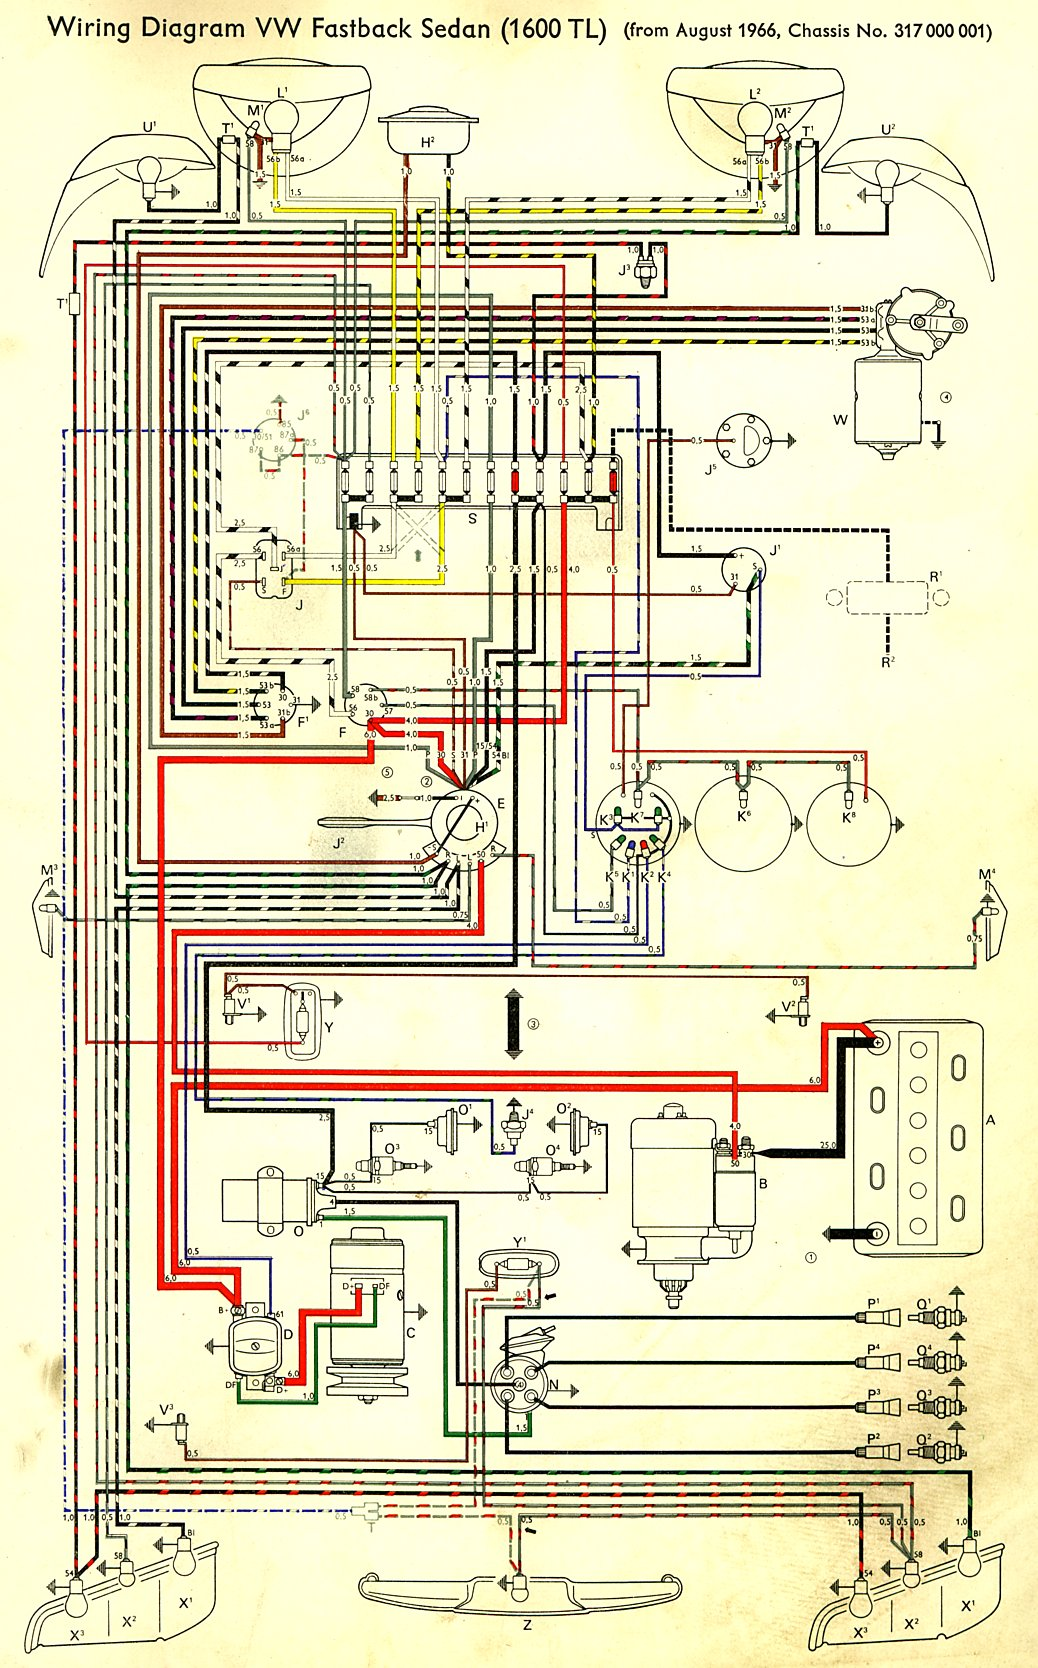 thesamba.com :: type 3 wiring diagrams 1967 vw bug wiring harness 1967 vw beetle wiring harness diagram